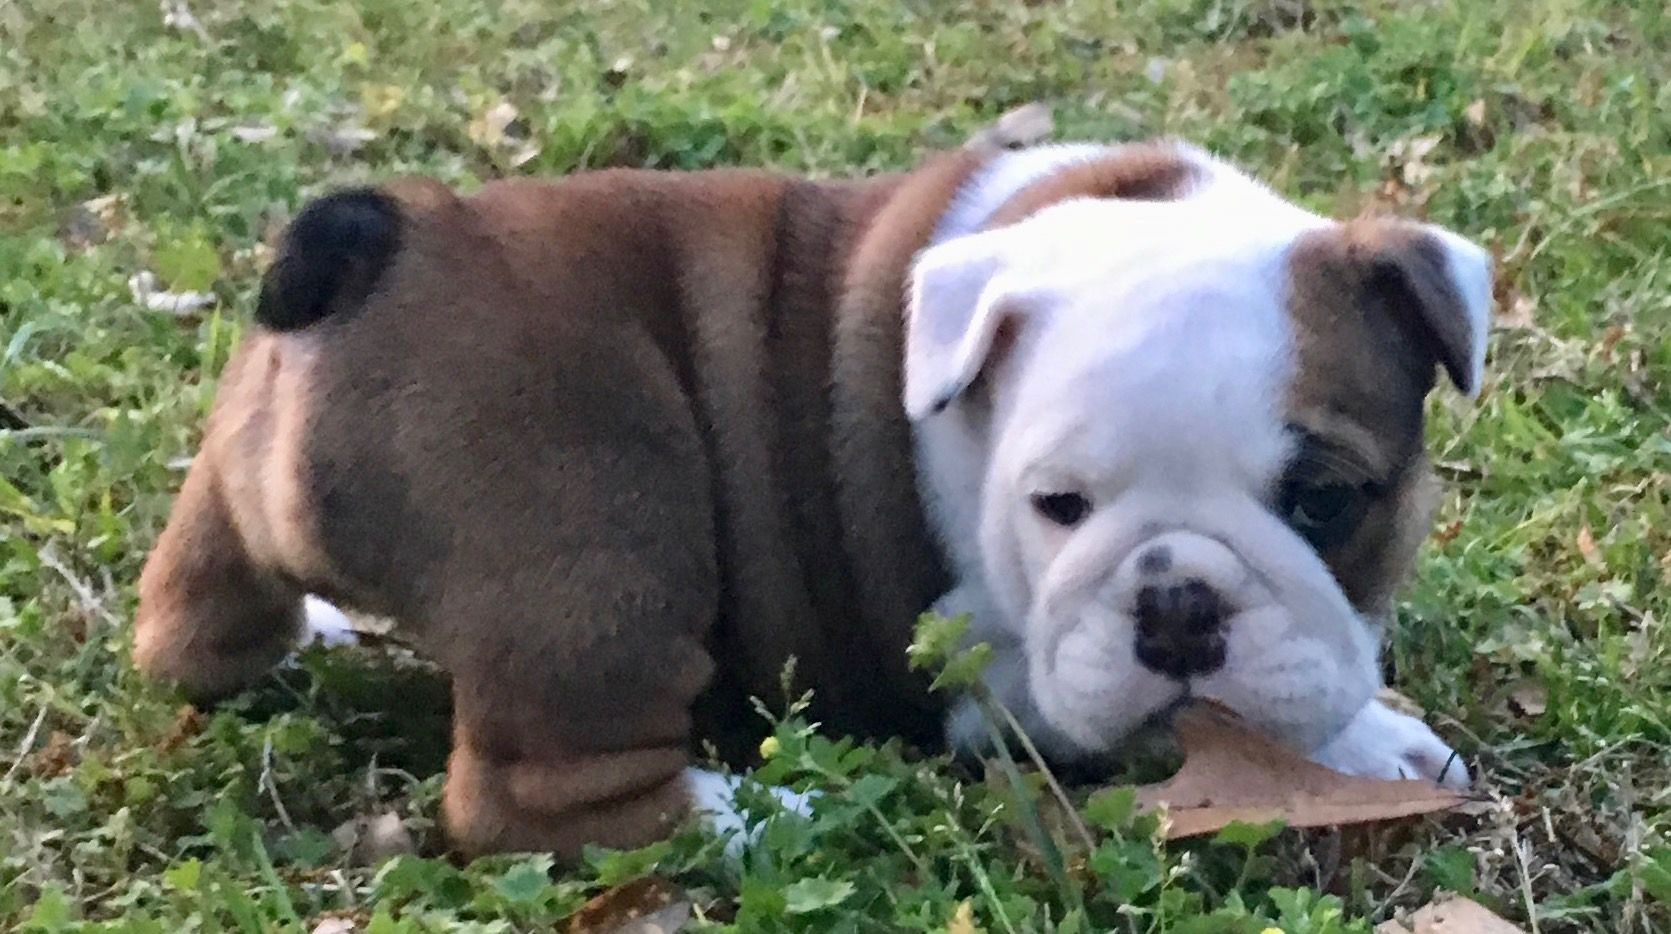 Clara Is A Fawn Female English Bulldog Puppy American Born And Raised With Champion Lines Being Sold With A One Year Pu Bulldog English Bulldog Puppy Puppies